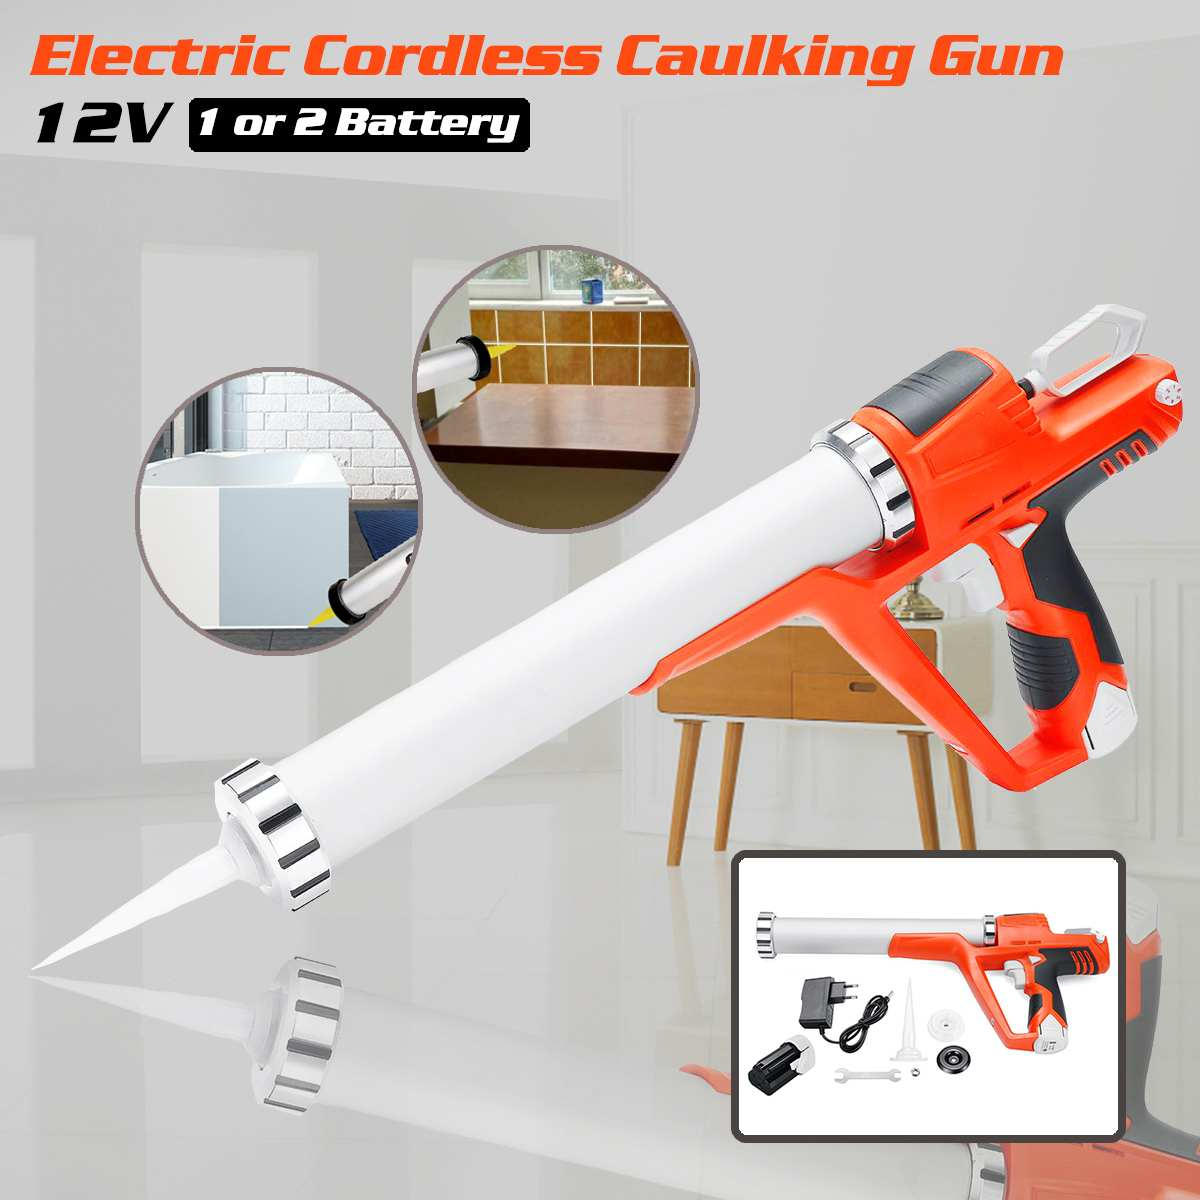 Guns Sealant Caulking Electric Handheld 2-Li-Batteries Guns-Tools-Kit Glass Cordless